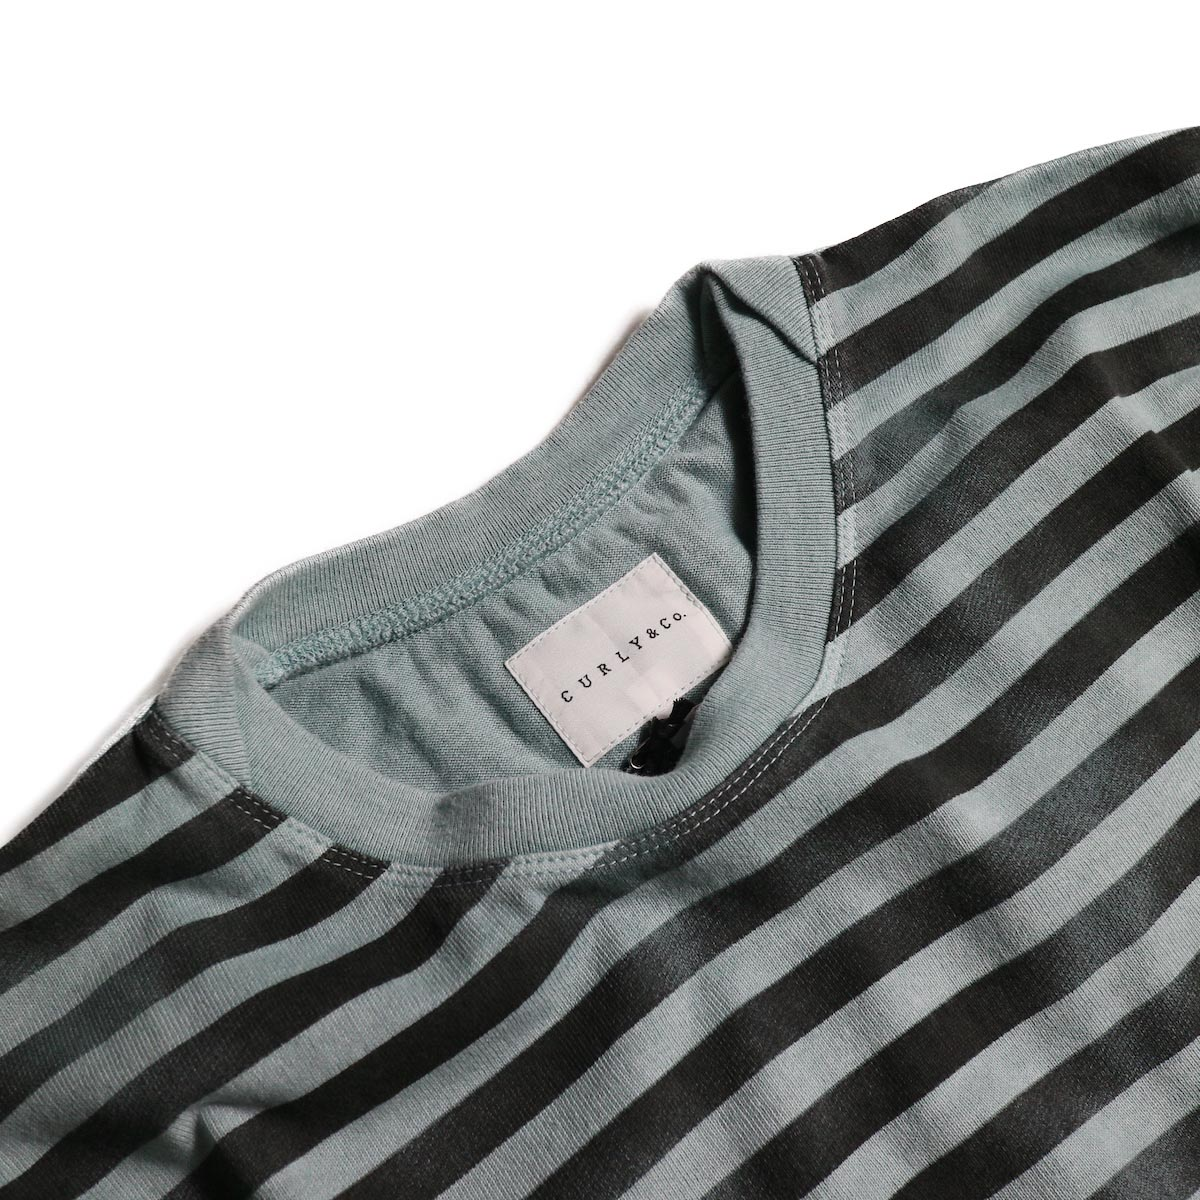 CURLY / FROSTED SS BORDER TEE (Blue/Black)クルーネック